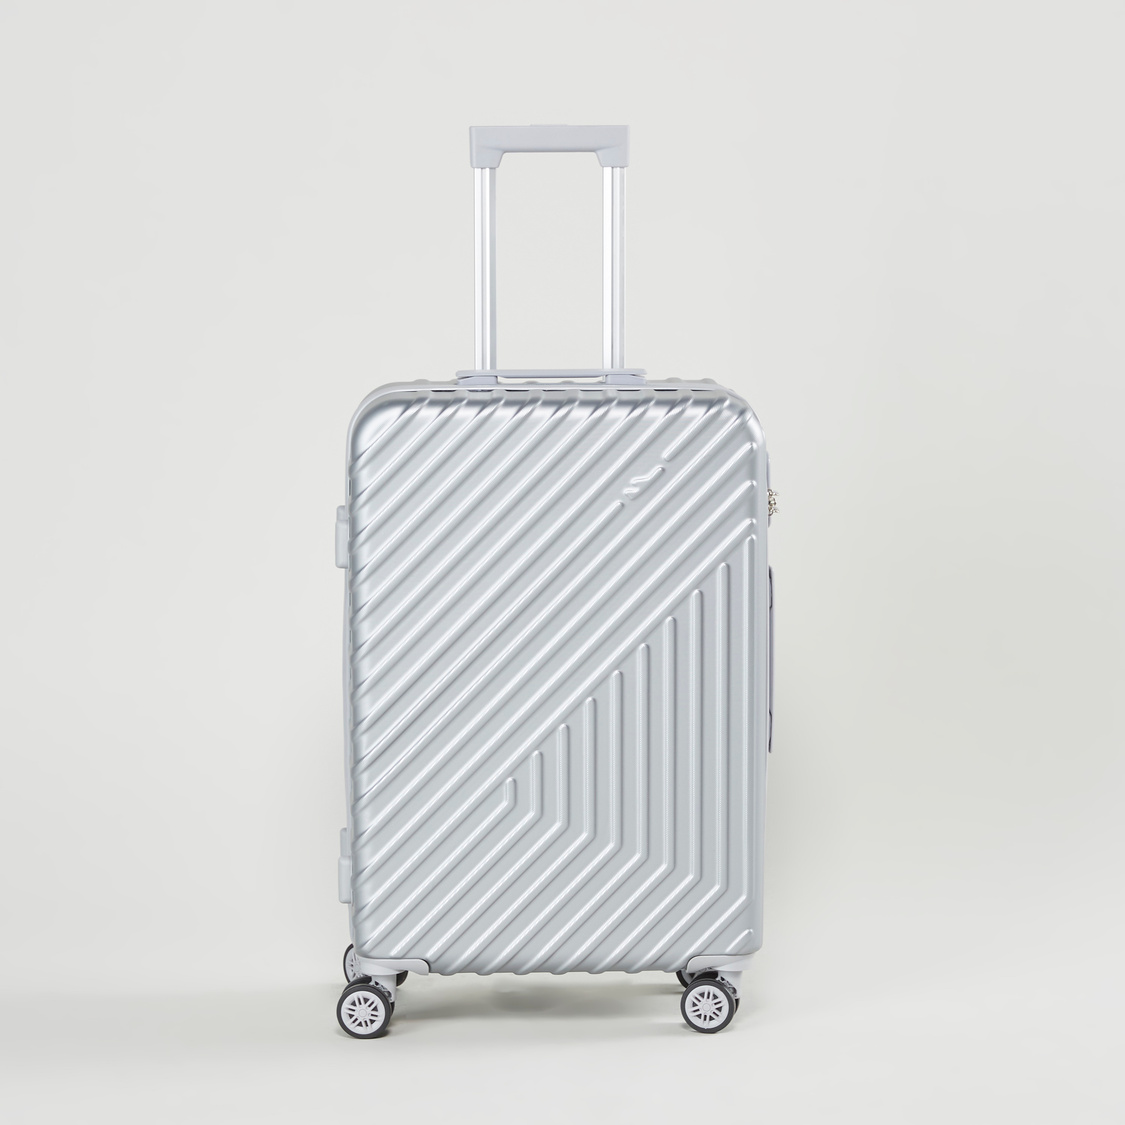 Textured Hard Case Luggage with Swivel Wheels - 43x26x66 cms